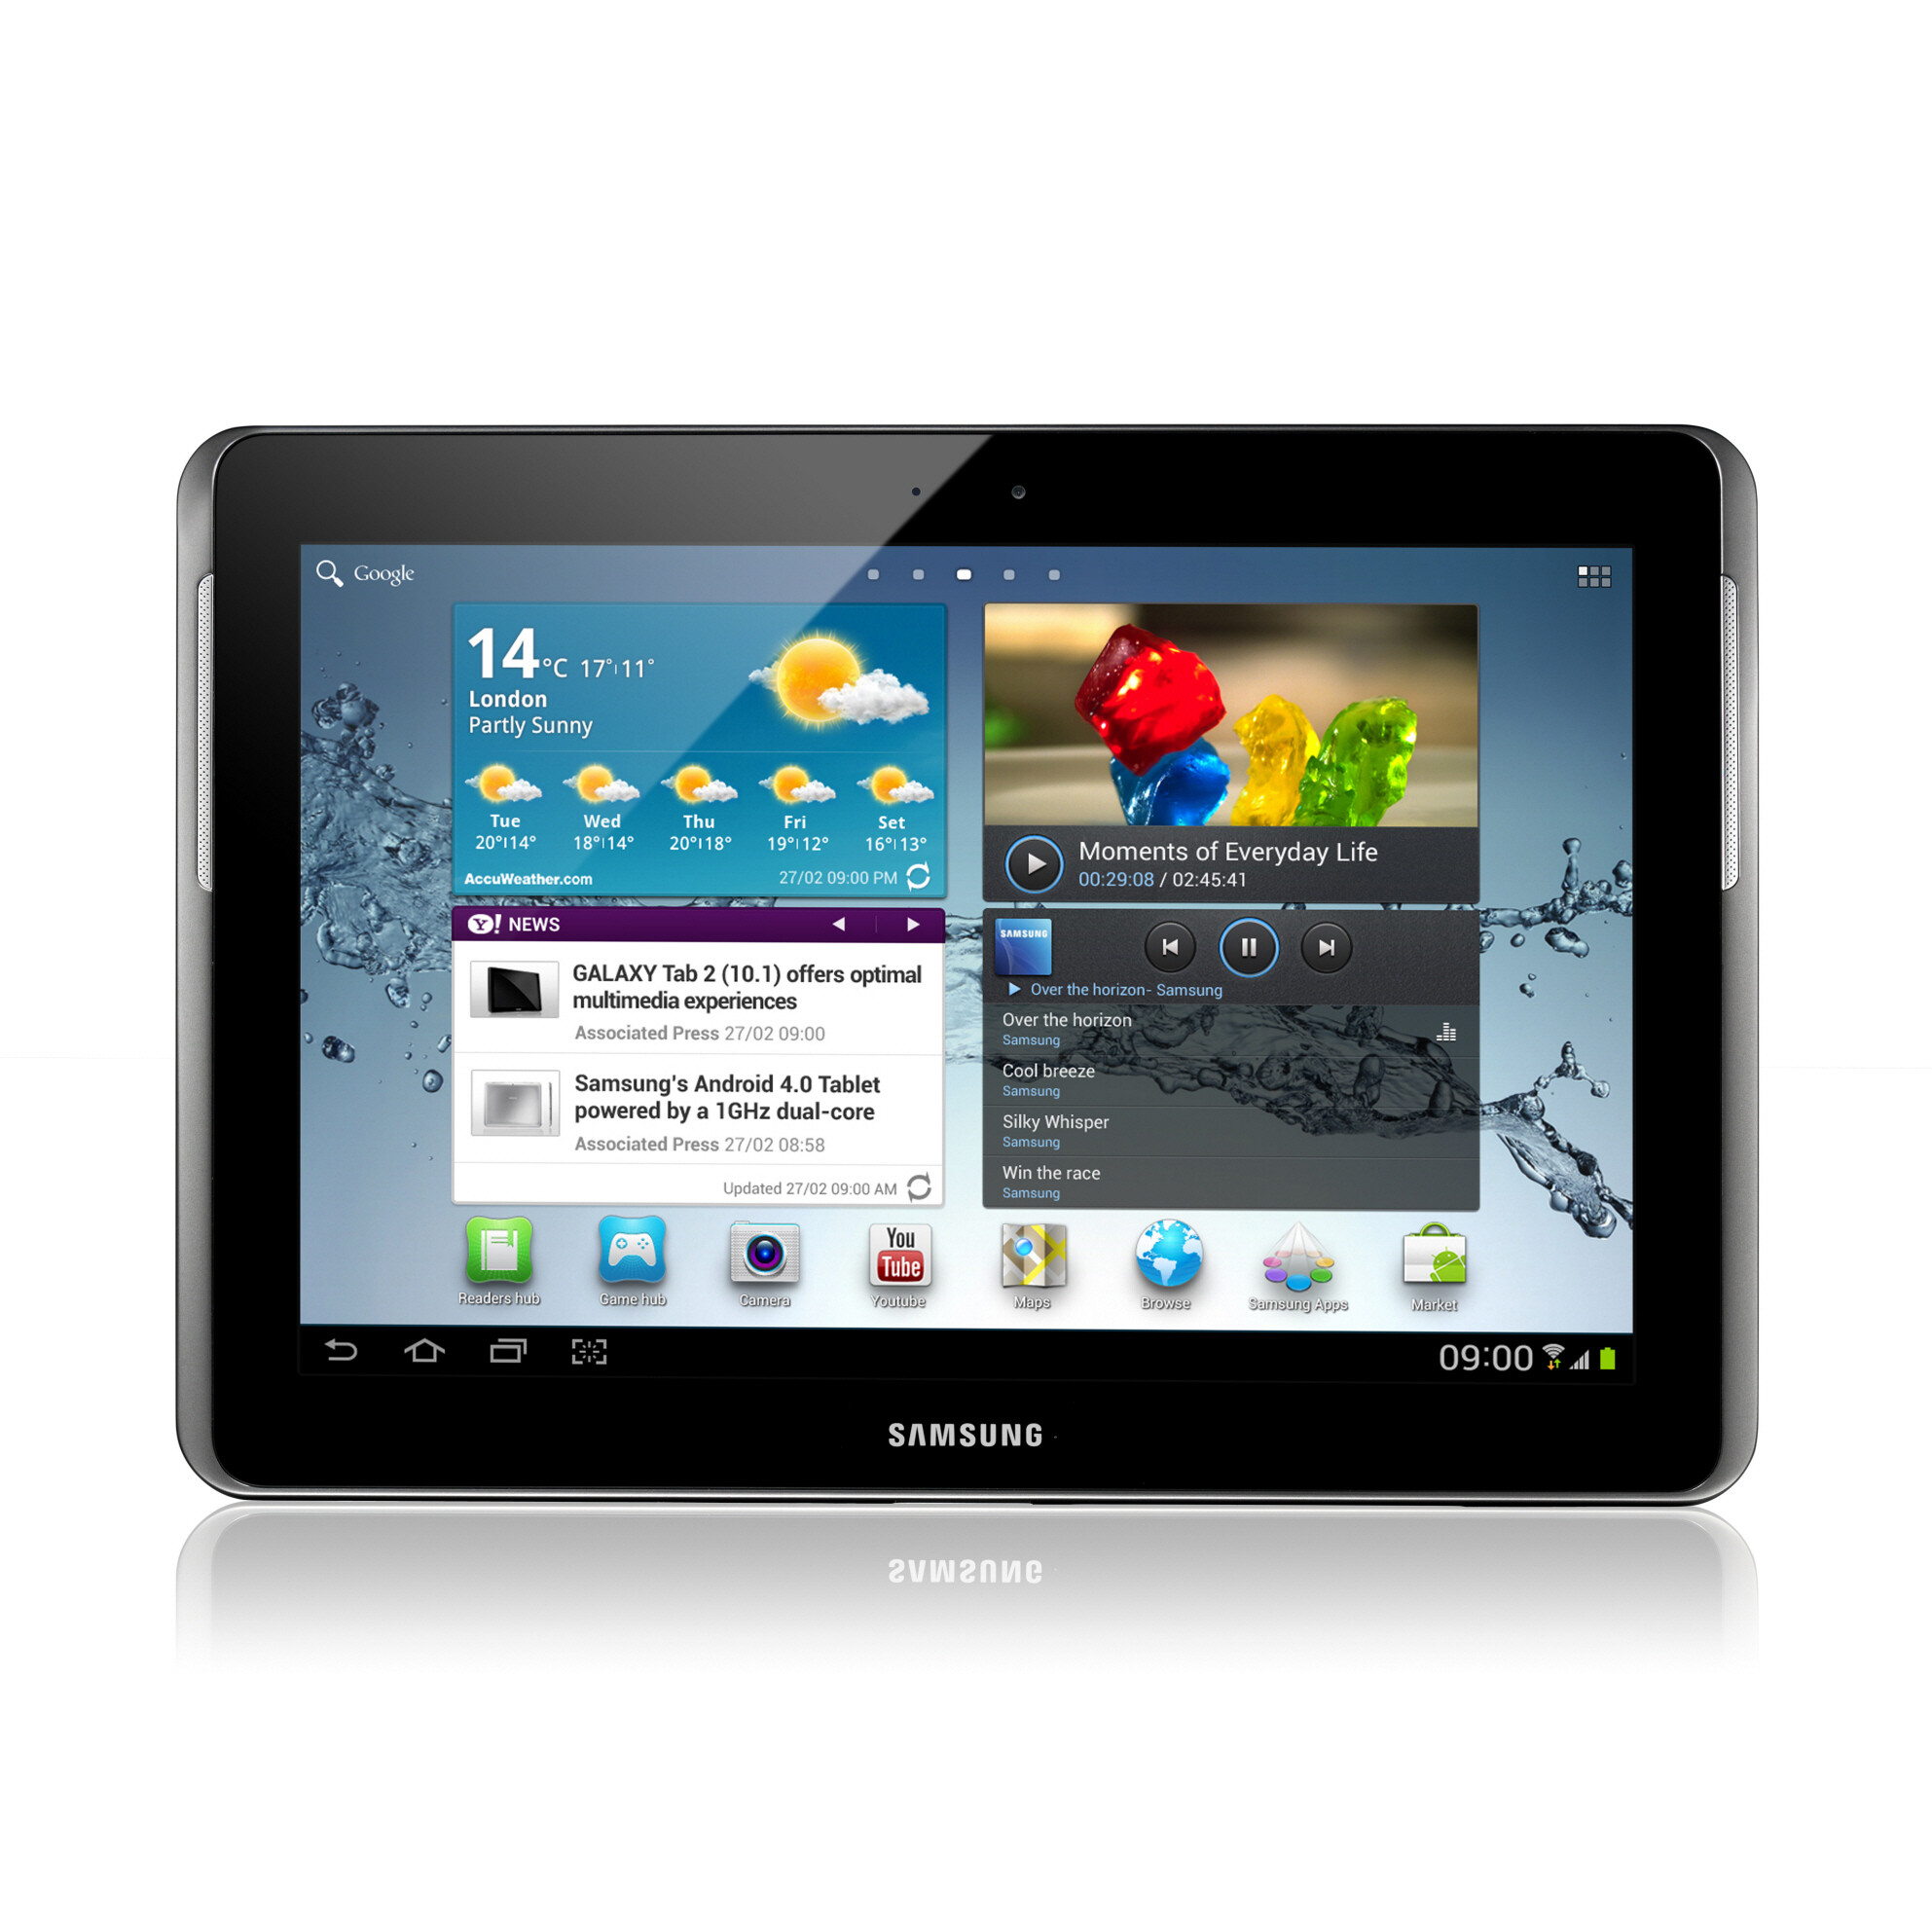 samsung galaxy tab 2 10 1 specs. Black Bedroom Furniture Sets. Home Design Ideas